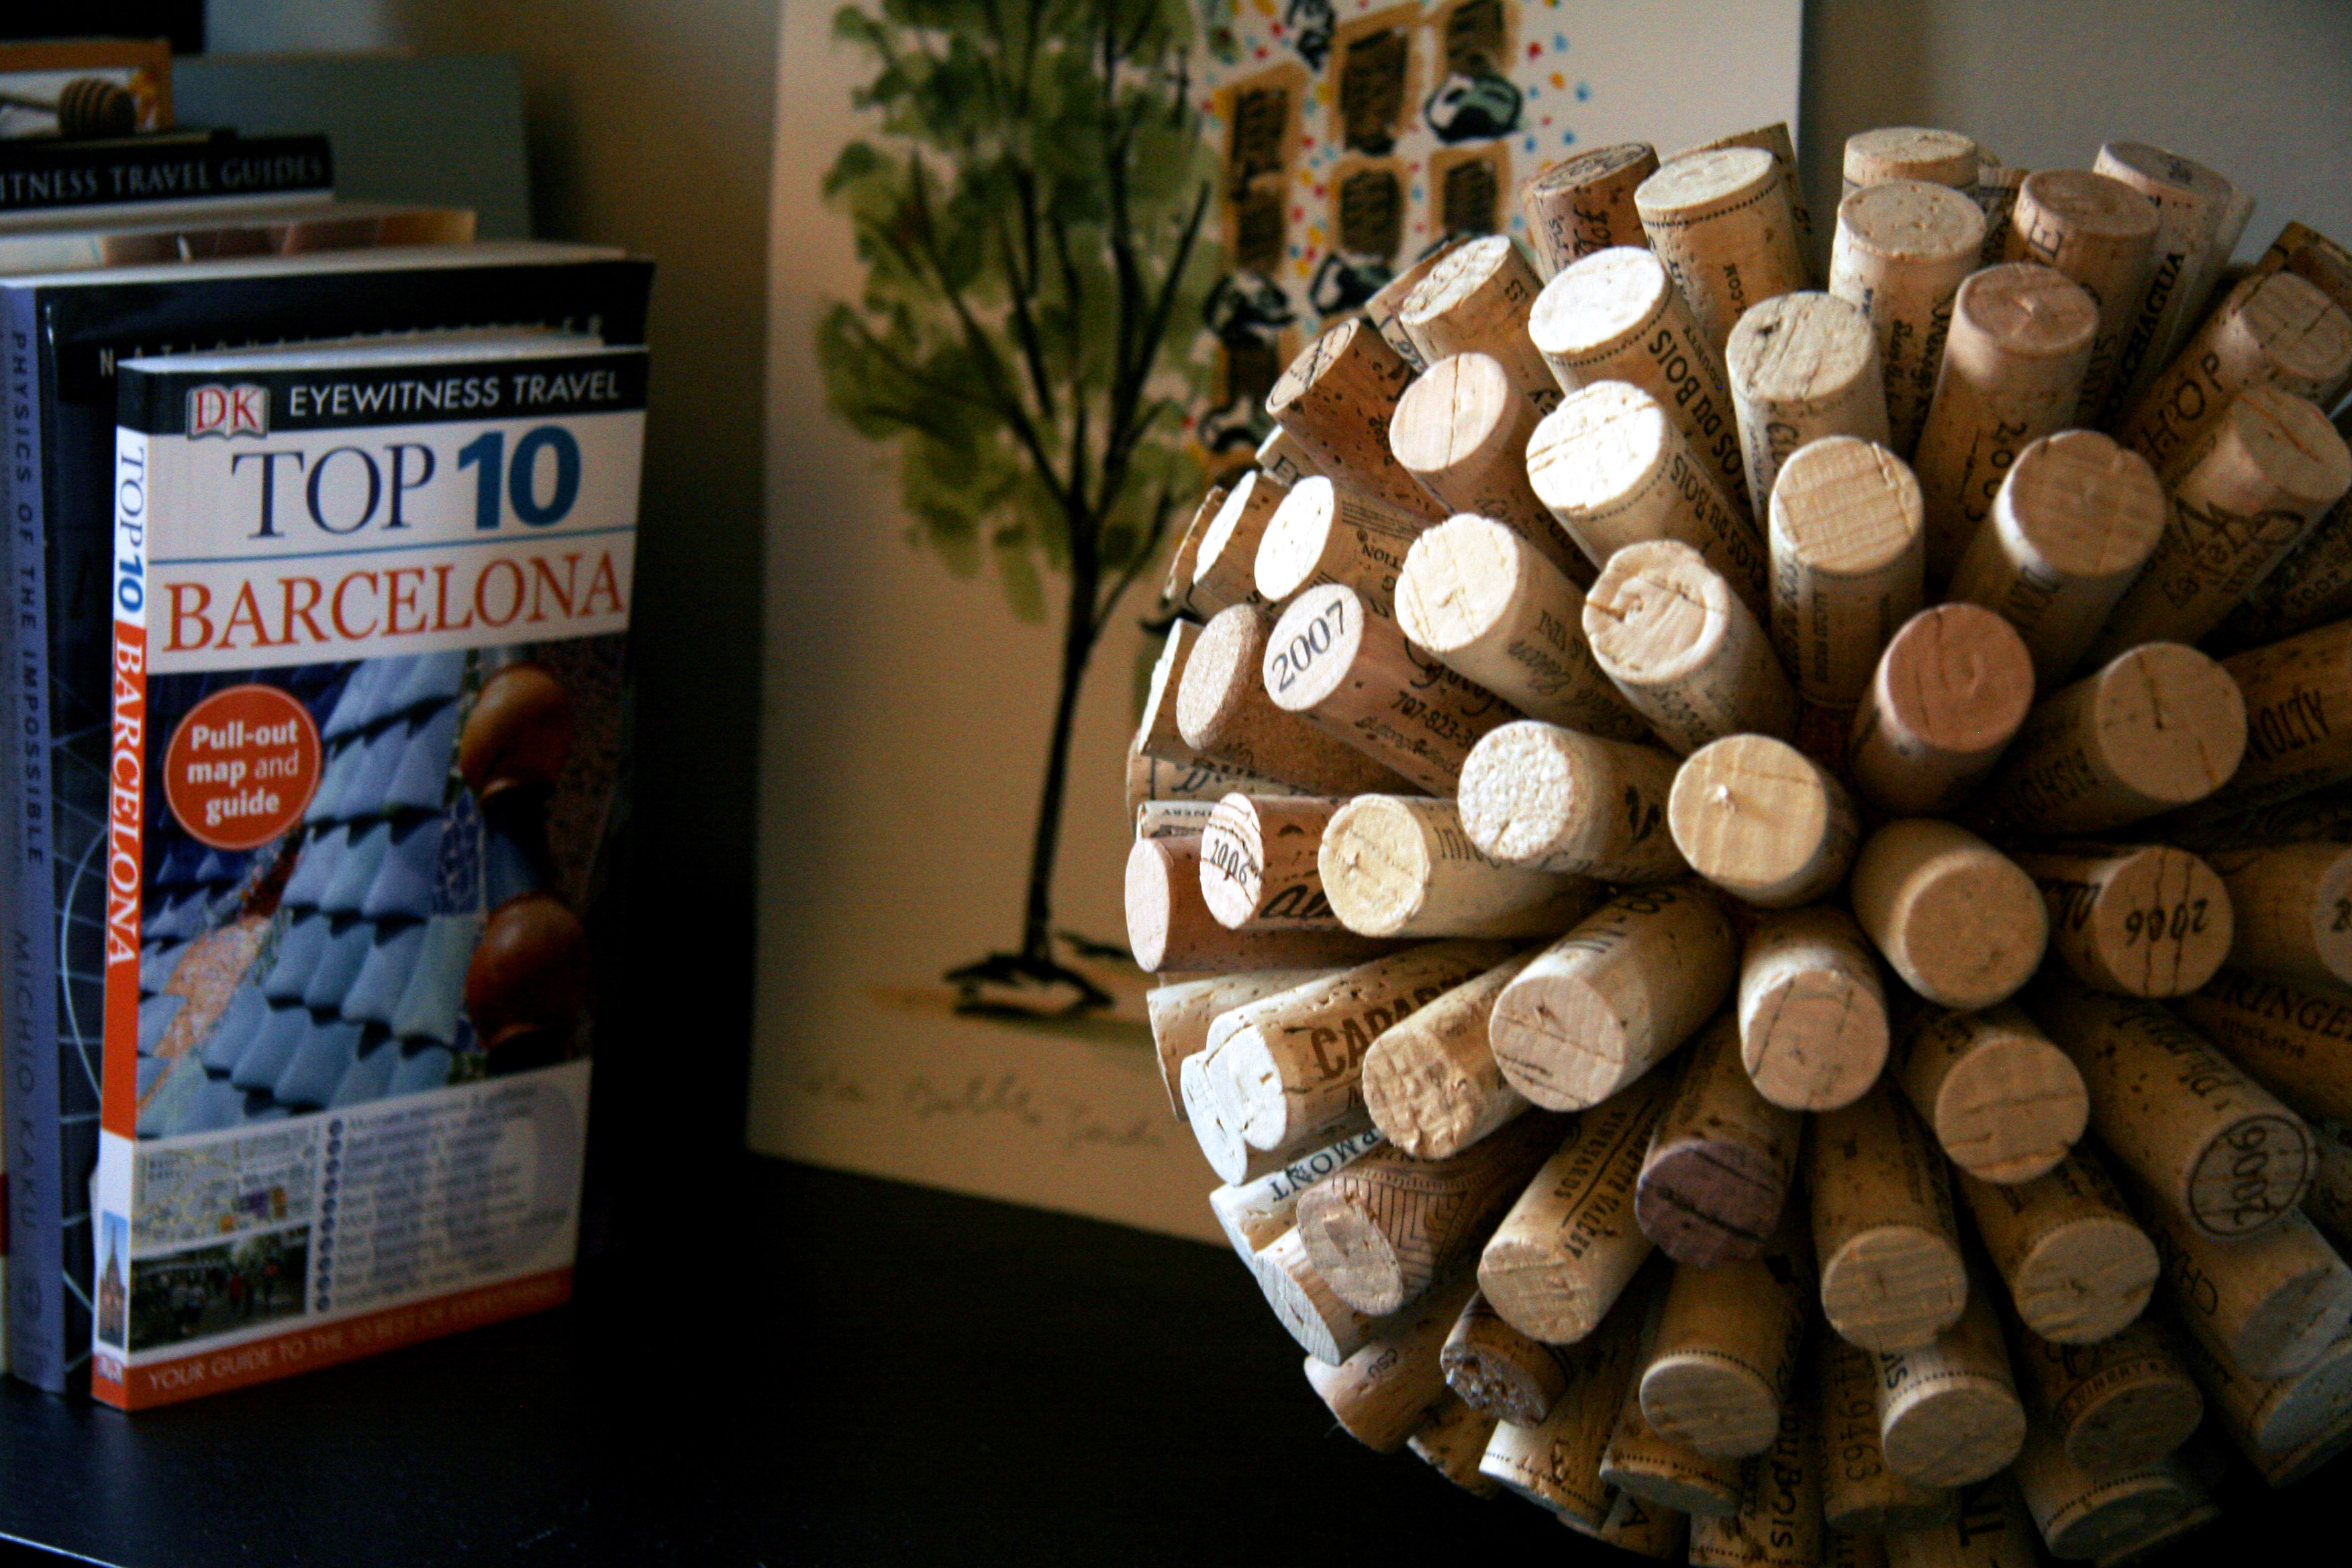 DIY Decorative Wne Cork Ball Craft